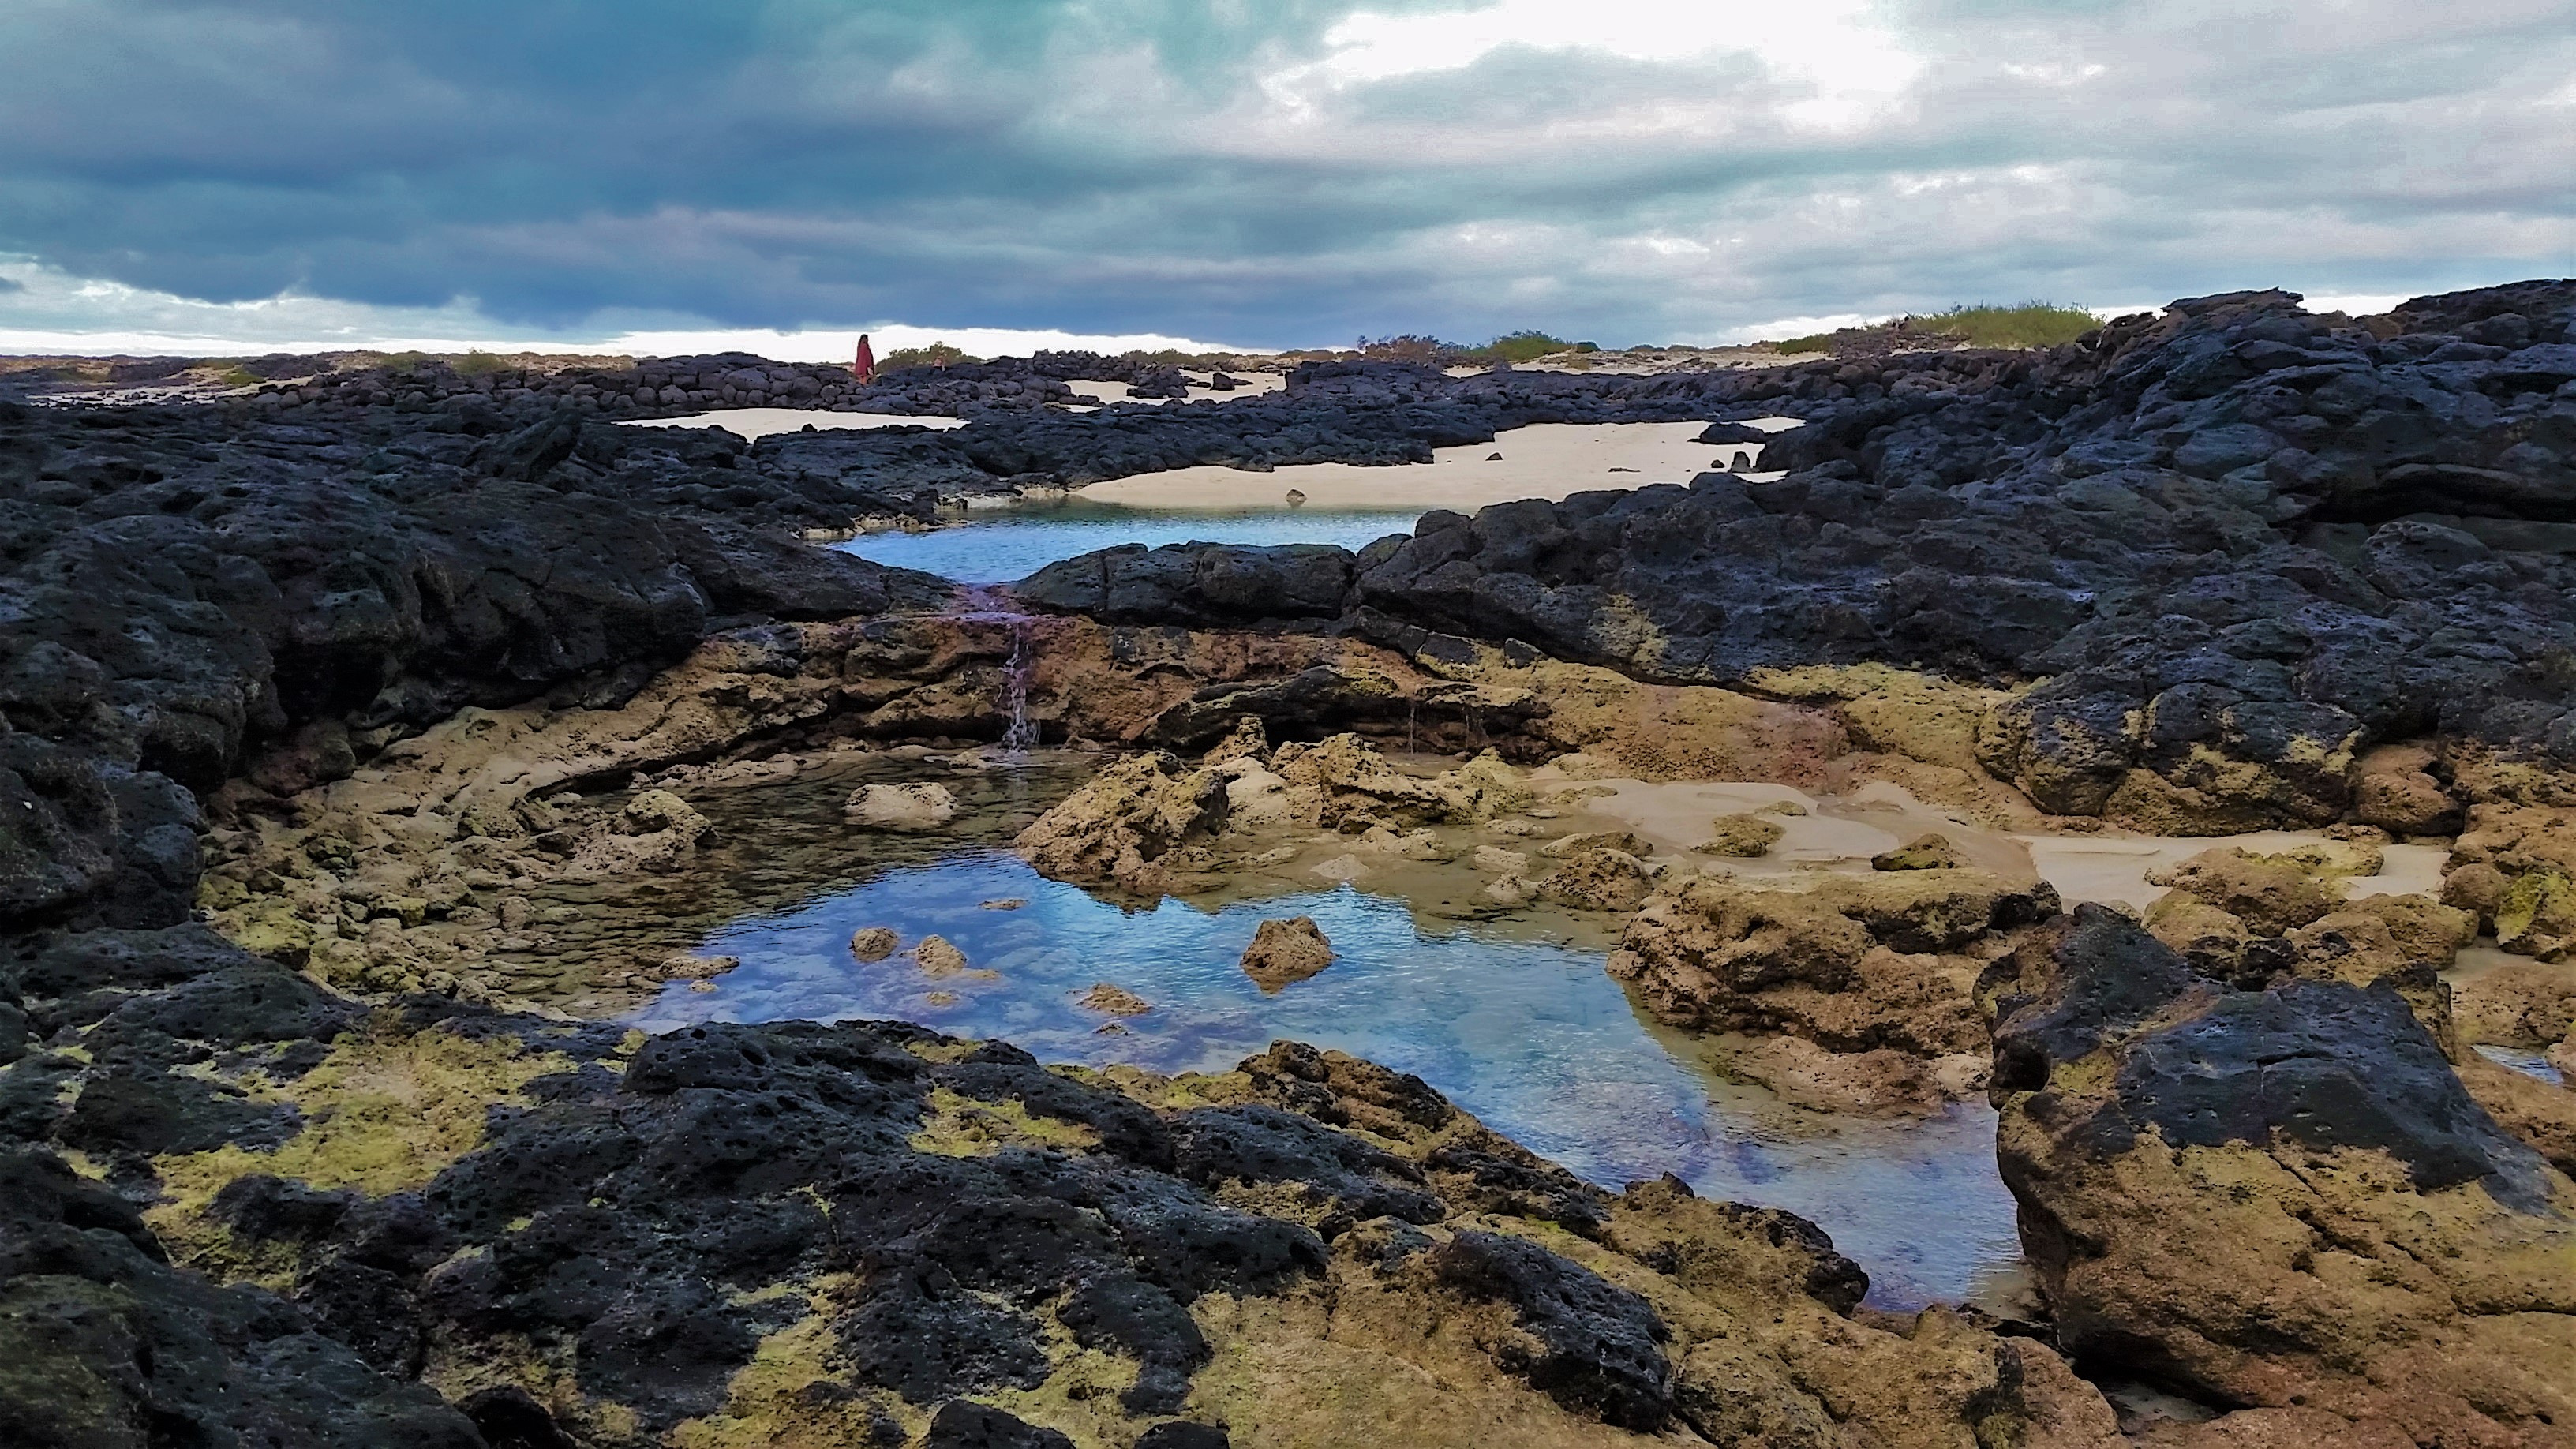 The low tides in LOS LAGOS (El Cotillo)